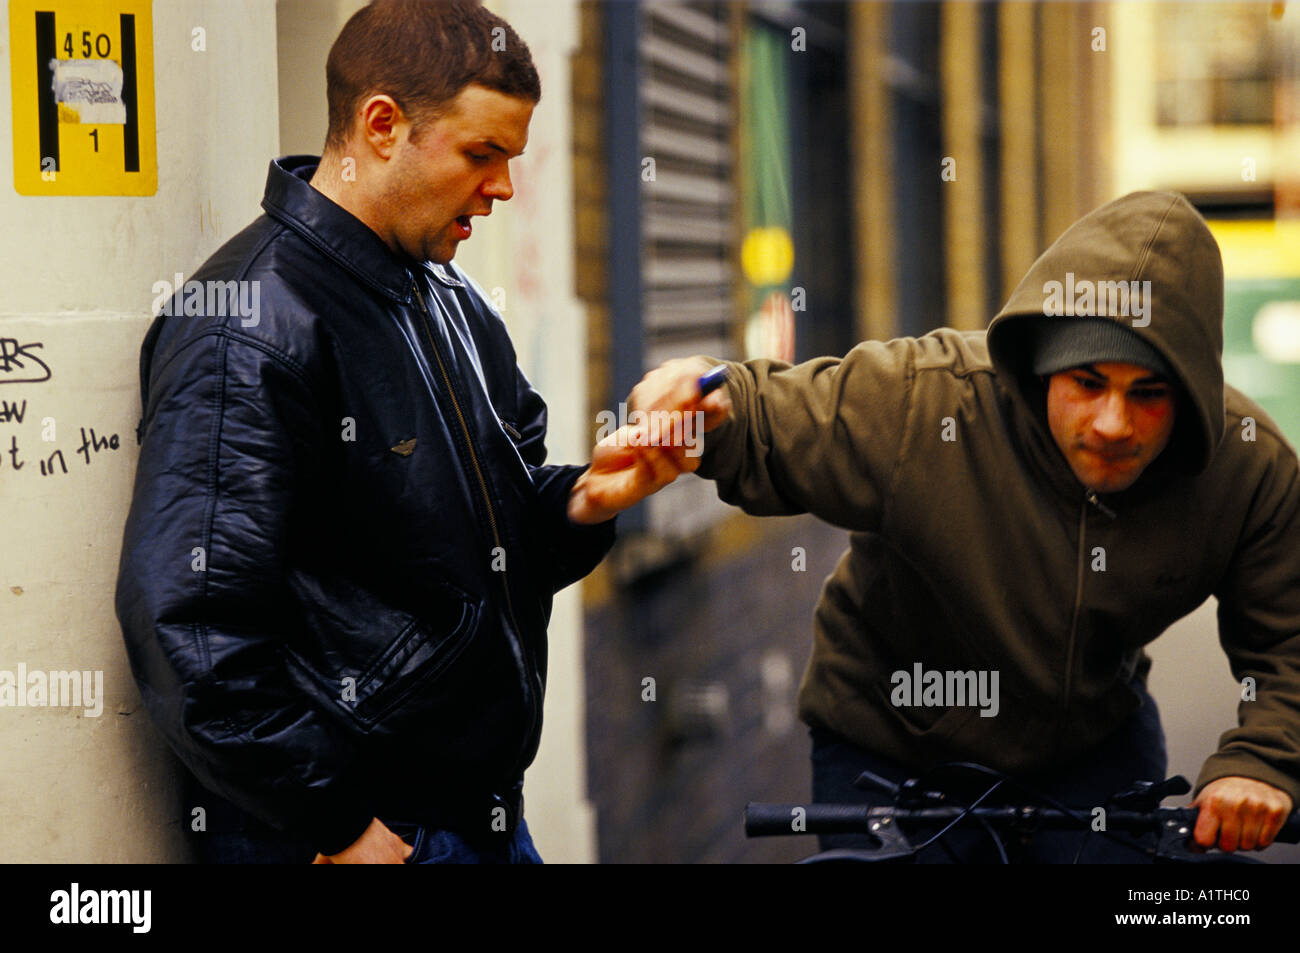 STREET CRIME MALE YOUTH ON MOUNTAIN BIKE SNATCHING MOBILE PHONE FROM SURPRISED MAN POSED BY MODELS 2002 - Stock Image